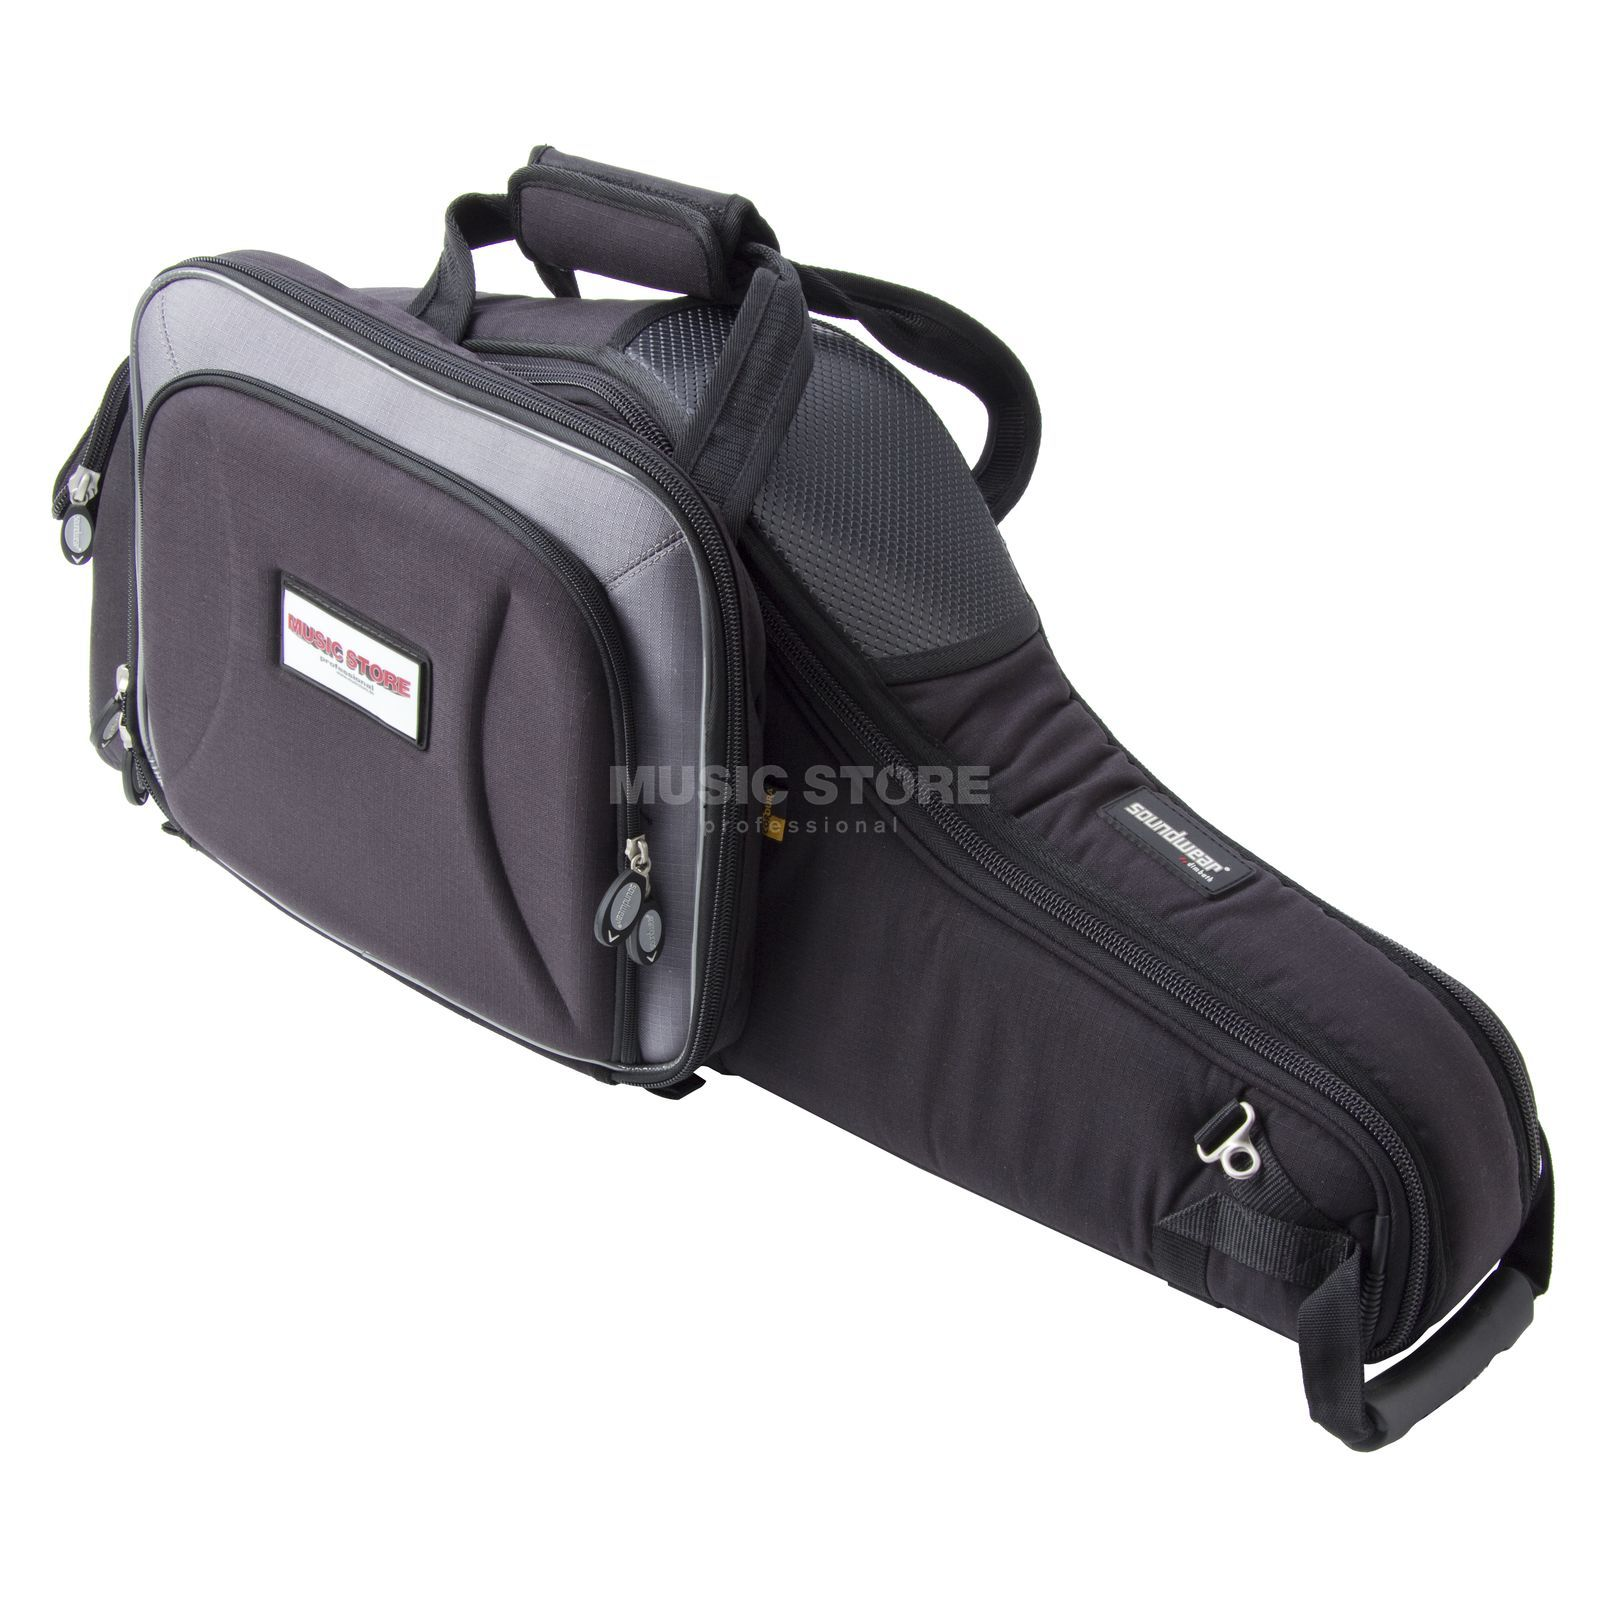 Soundwear Performer Tenorsax Bag  Product Image